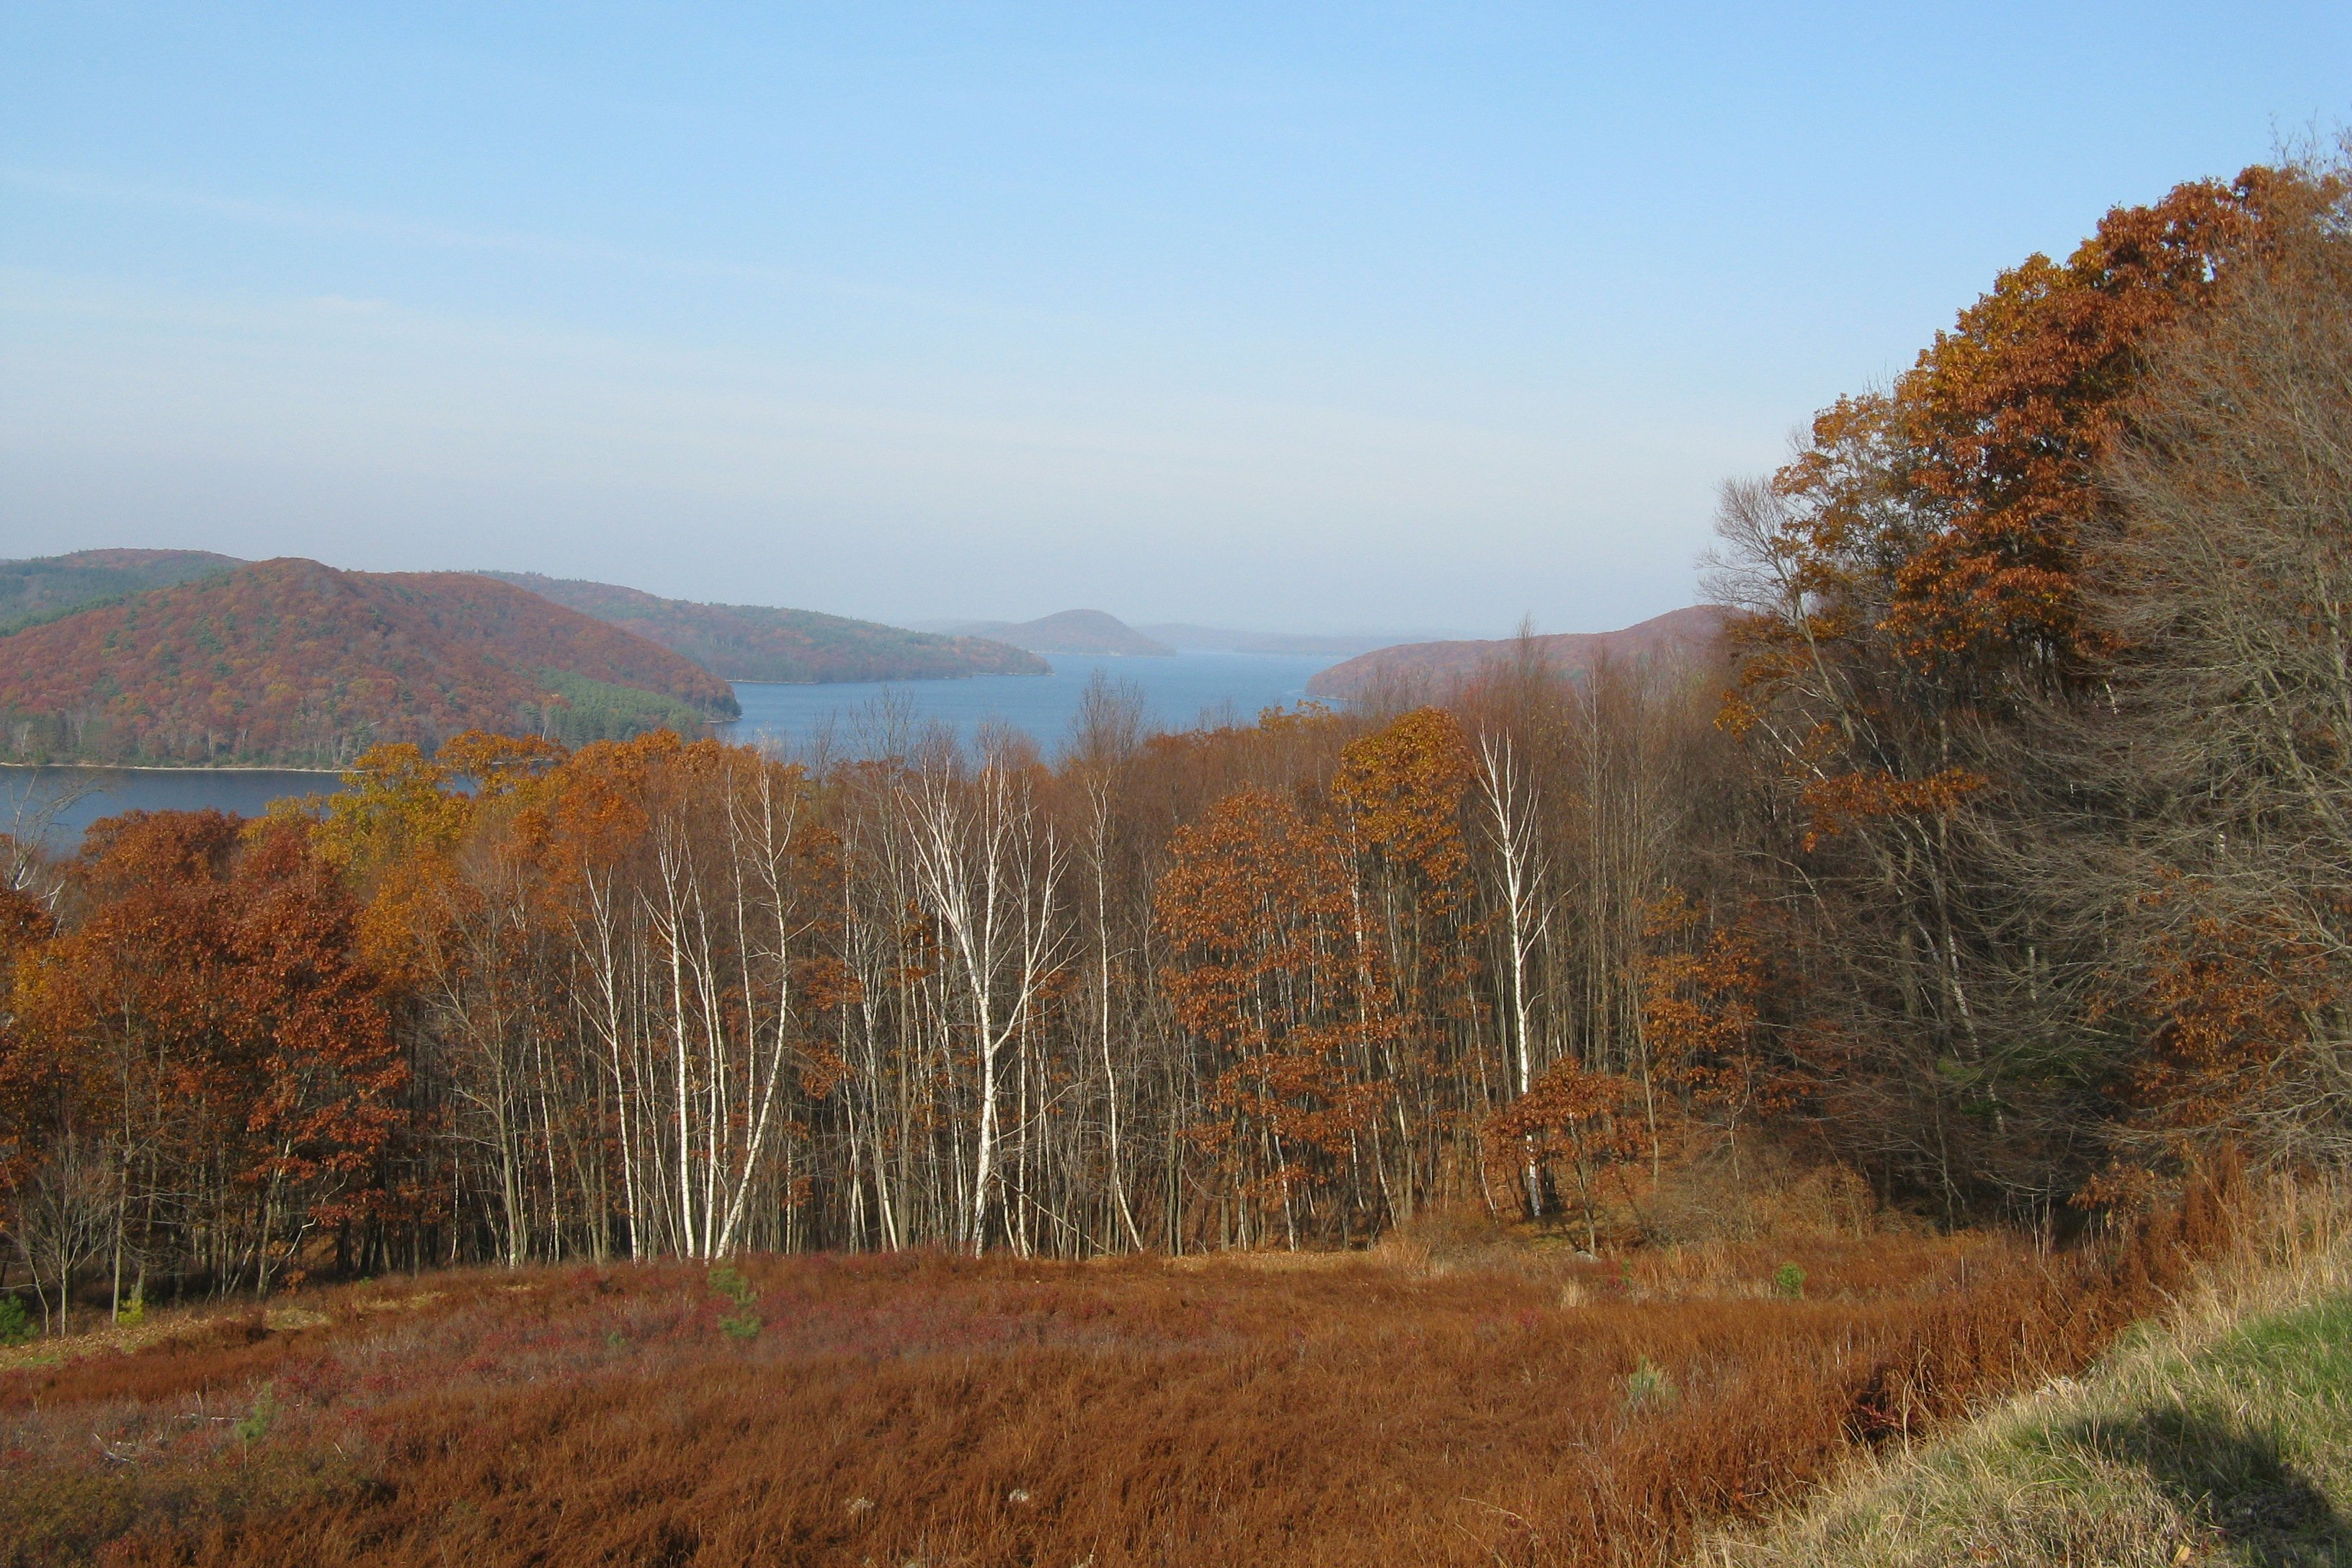 Overlooking Quabbin Reservoir and former site of Enfield, now submerged.  Photo on Wikimedia Commons by John Phelan